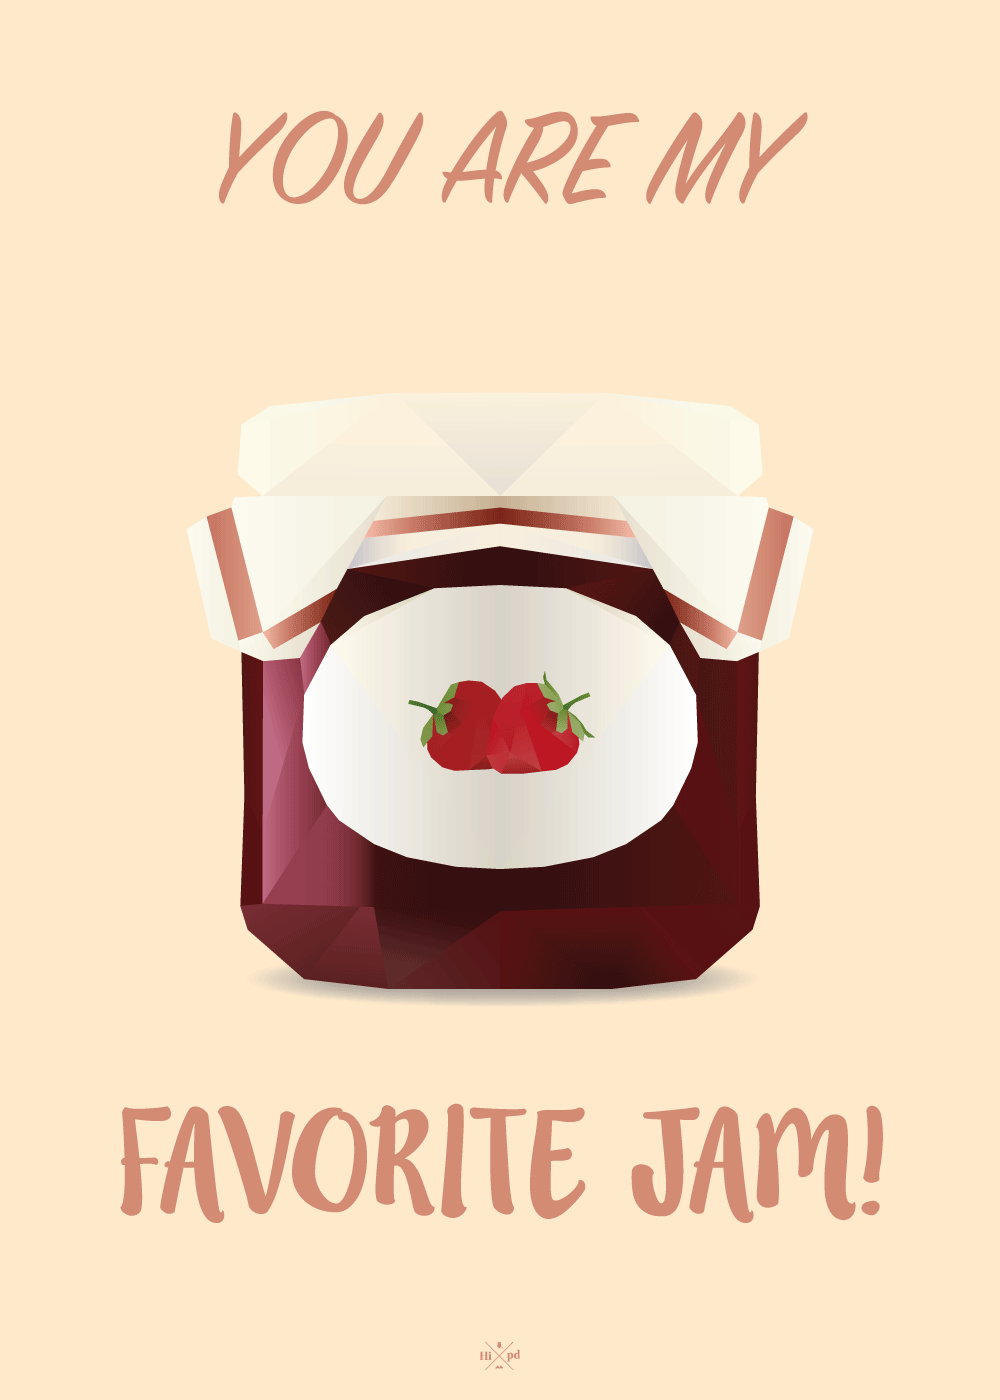 You are my favorite jam